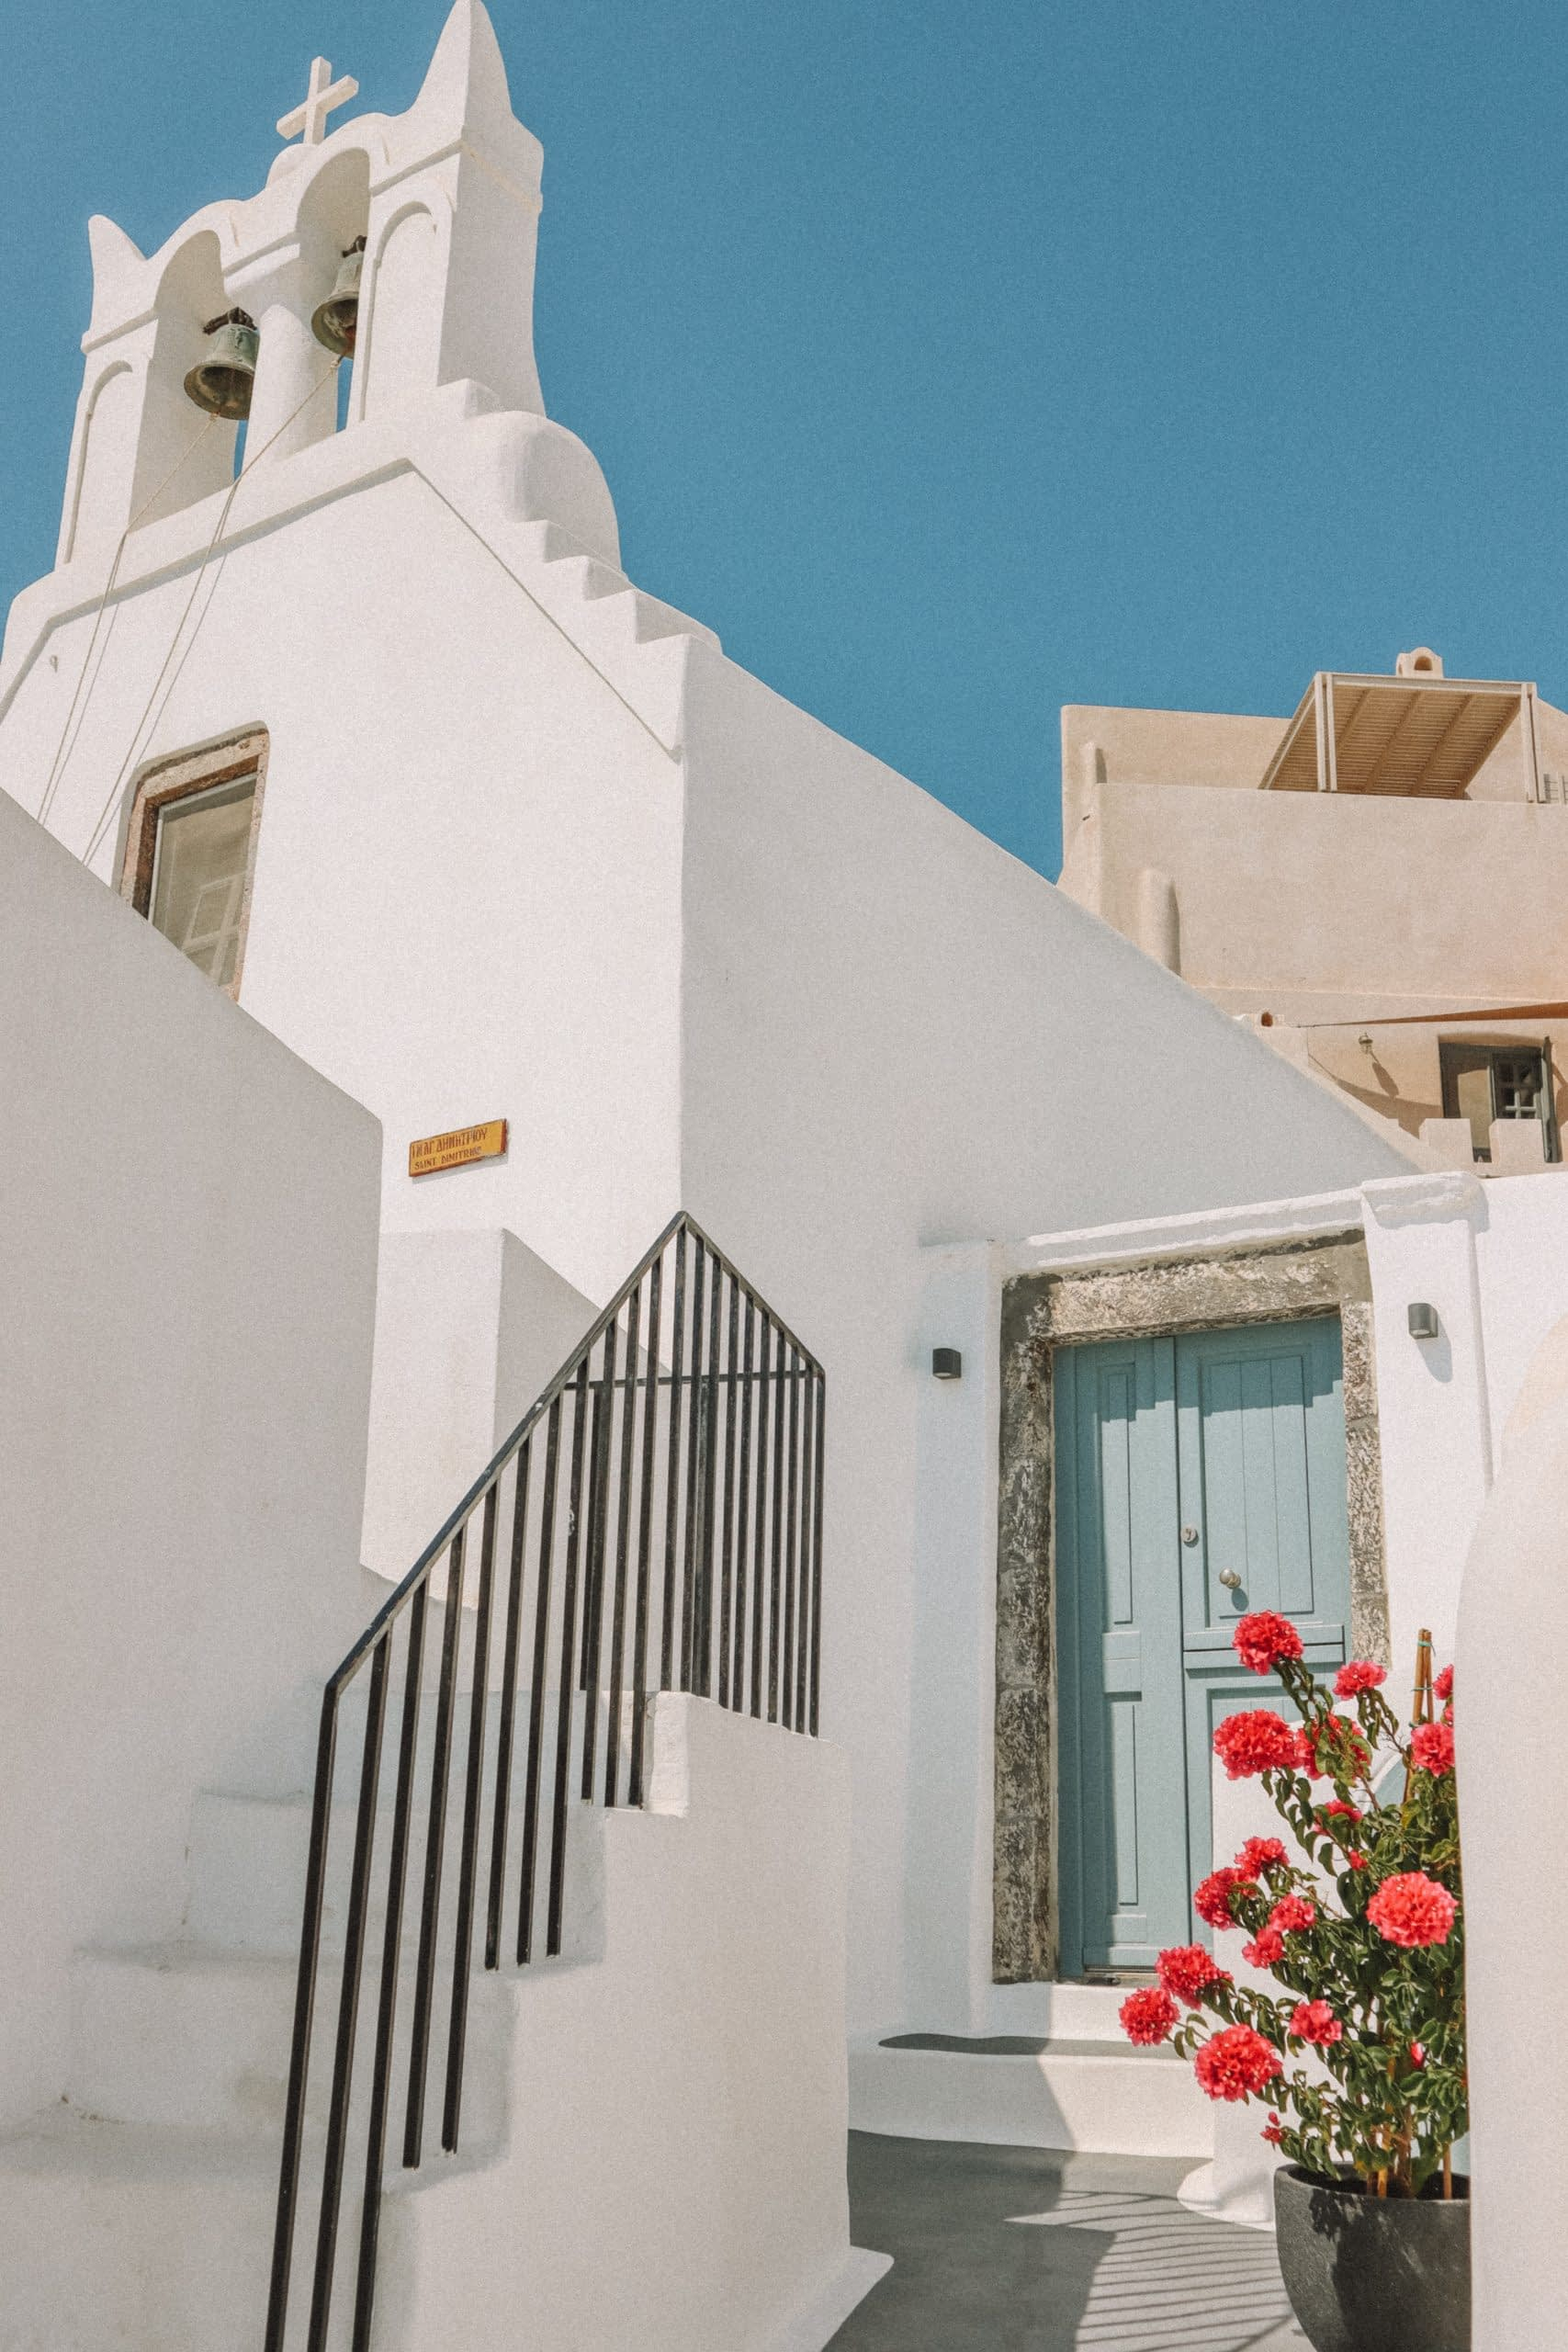 A whitewashed building with flowers and a blue painted door. Things to do in Santorini